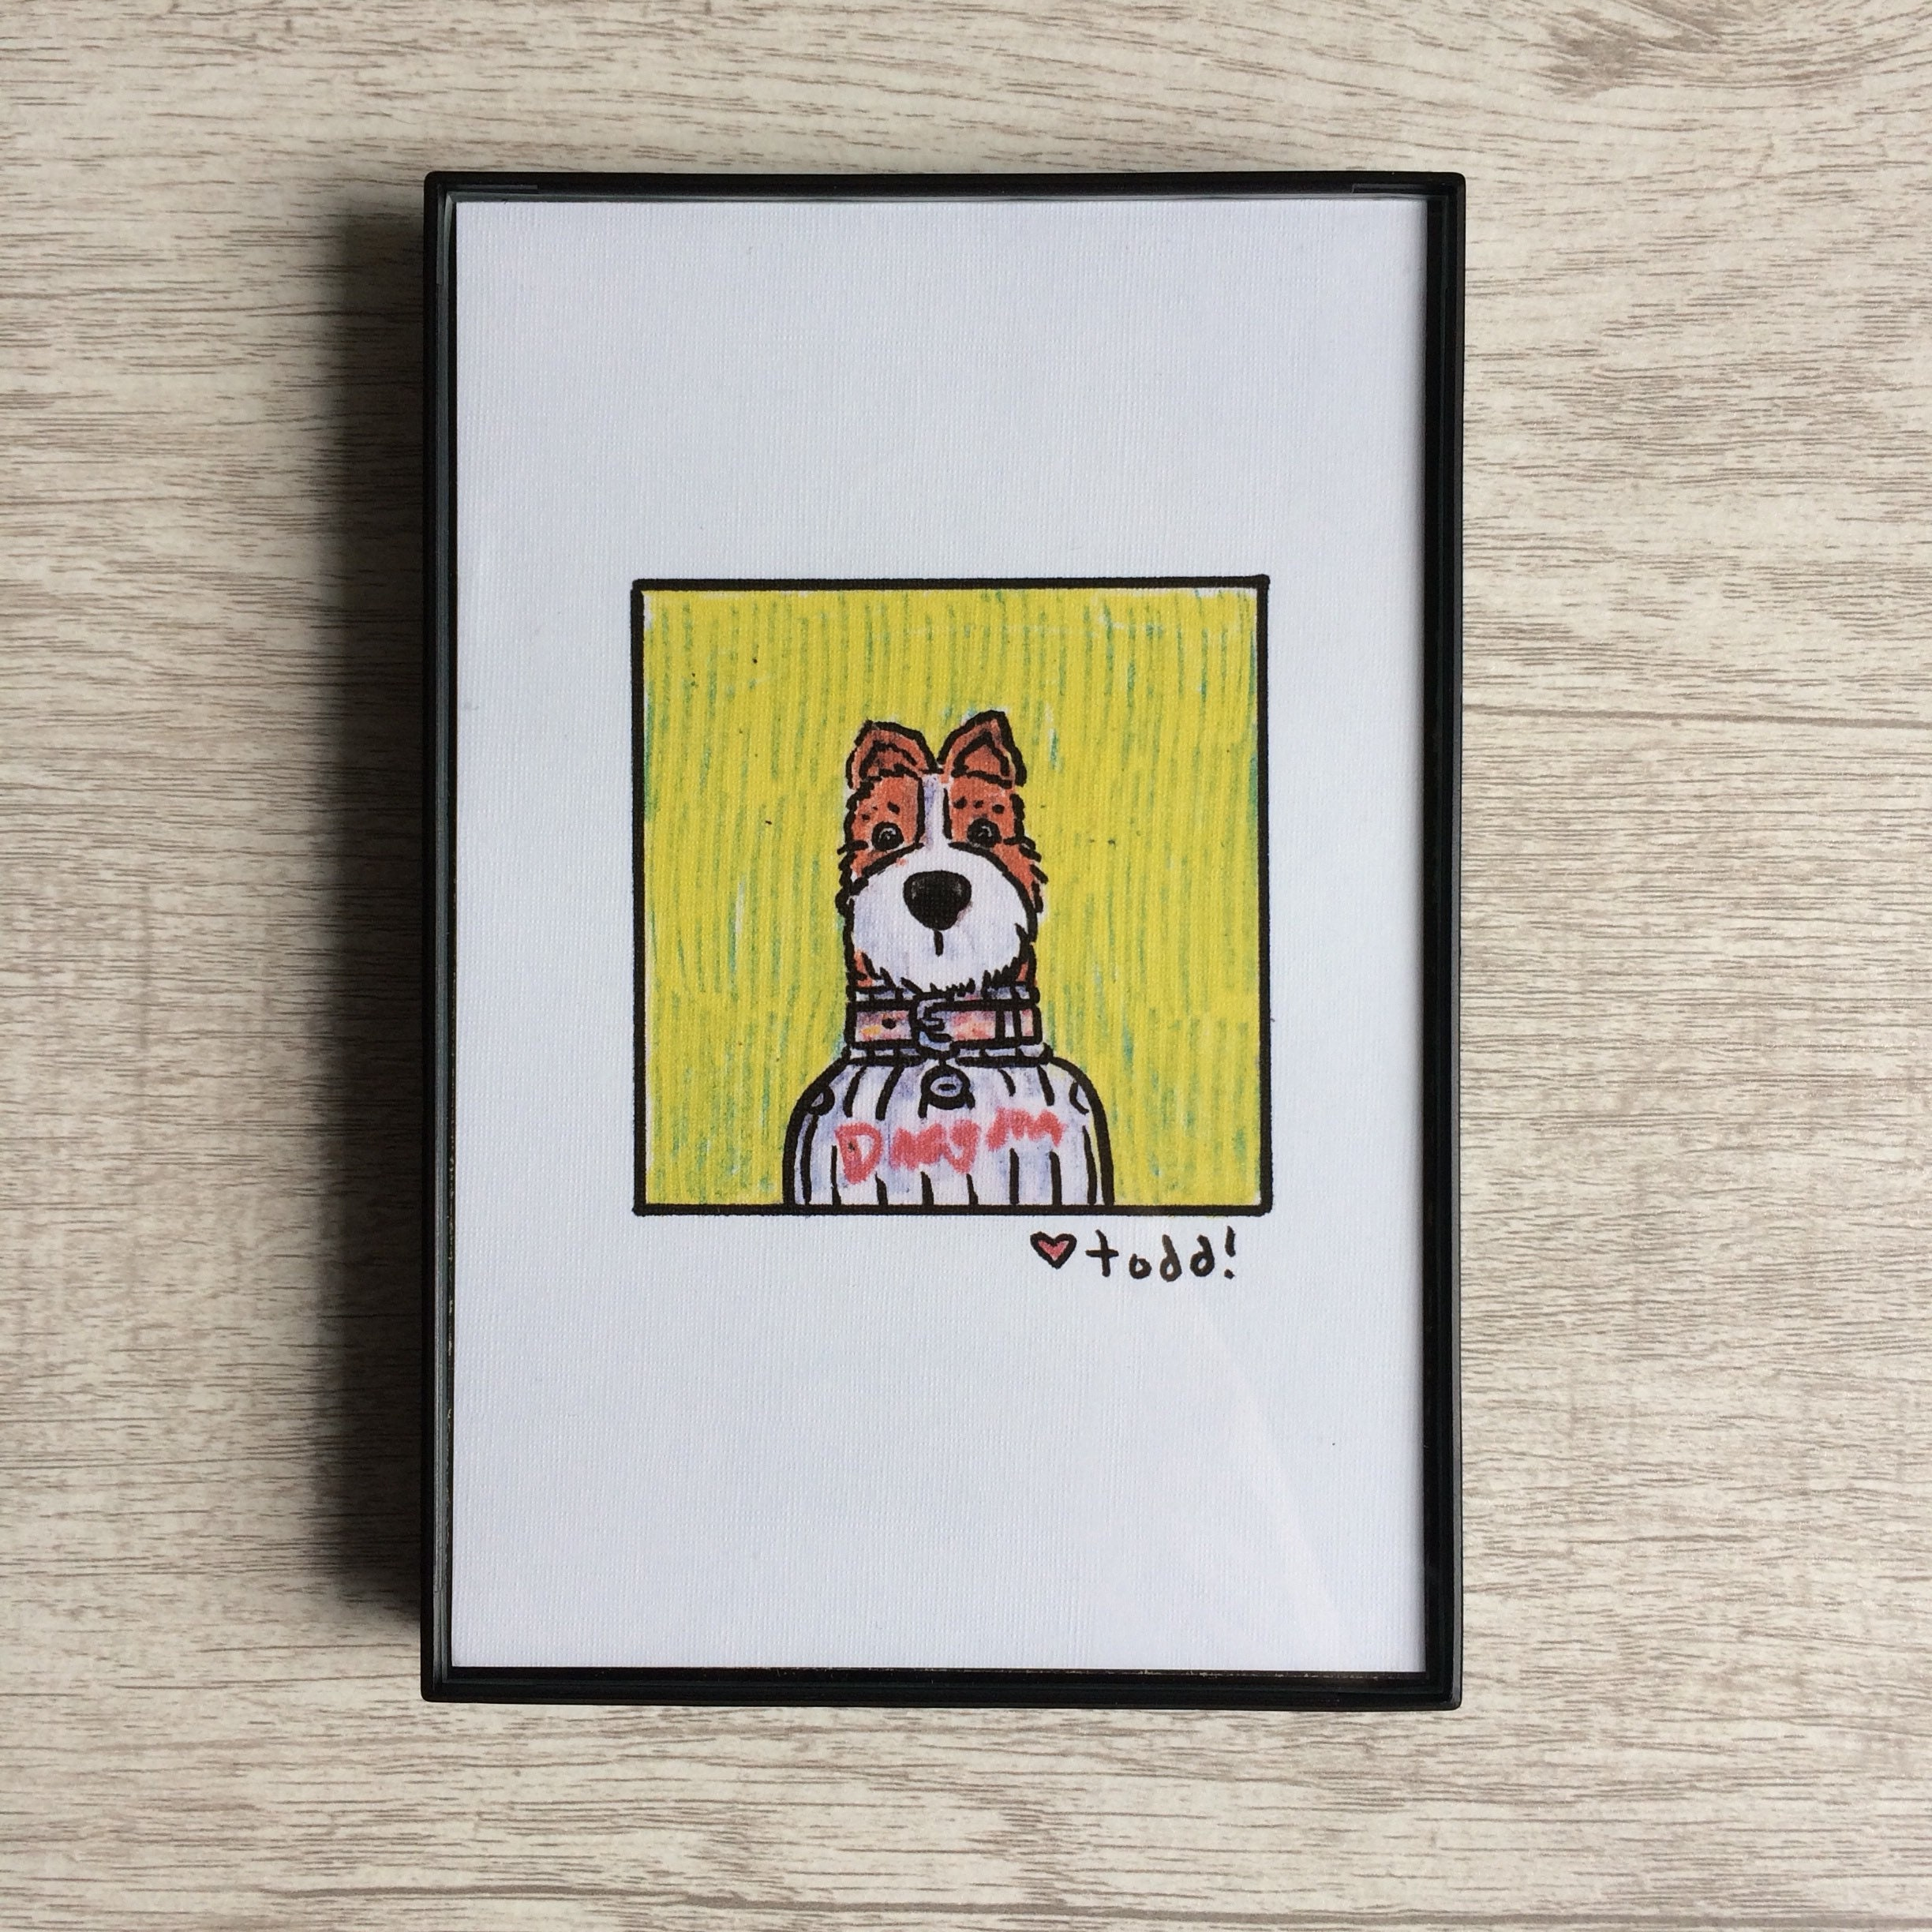 Isle of Dogs Boss Print 4 x 6 inches Wes Anderson | Etsy